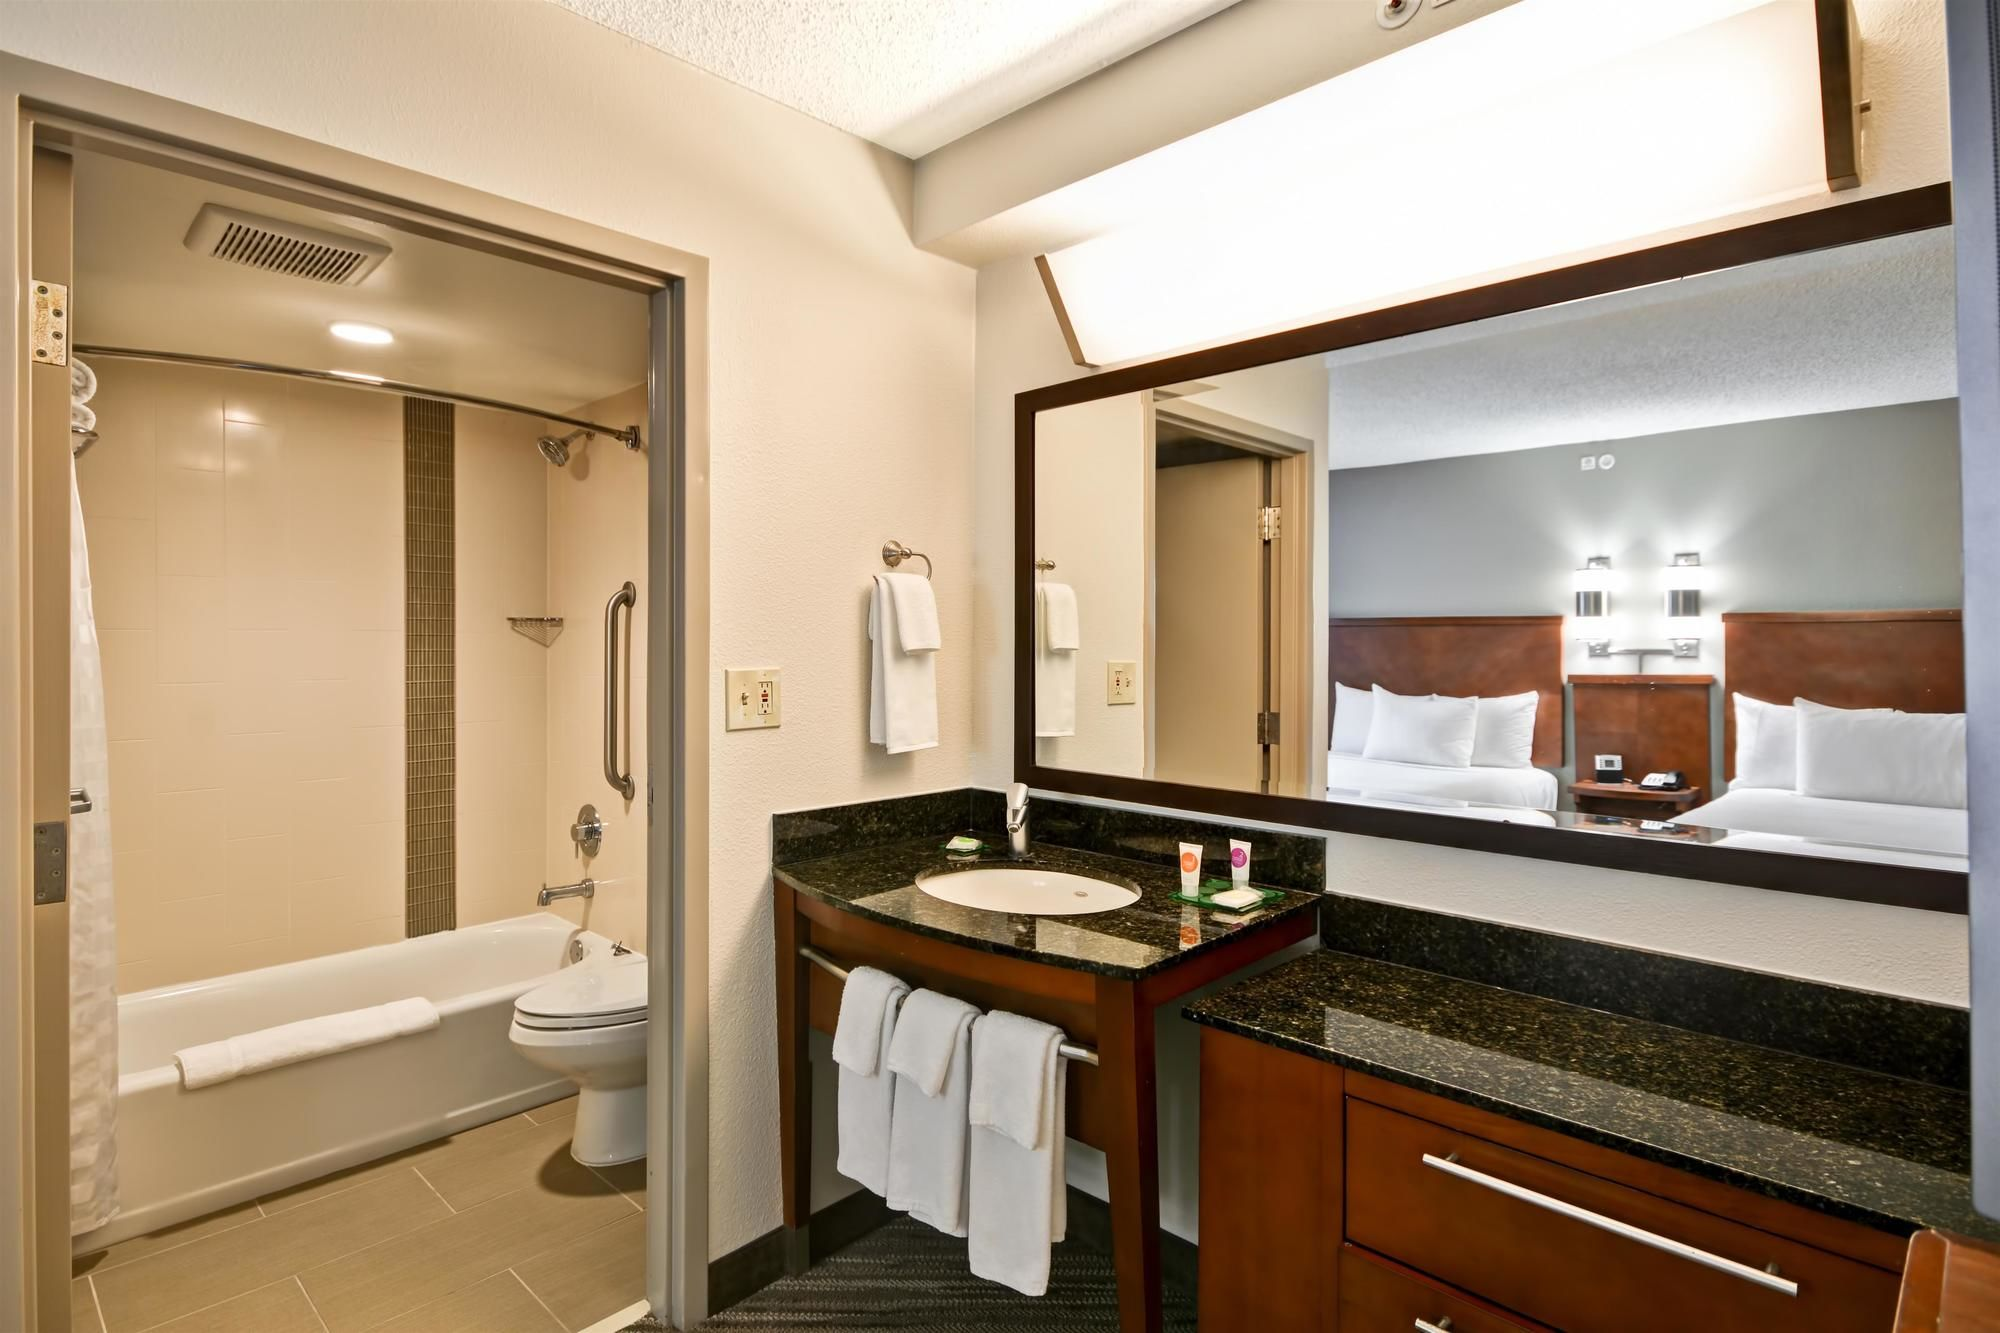 dallas hotel coupons for dallas, texas - freehotelcoupons